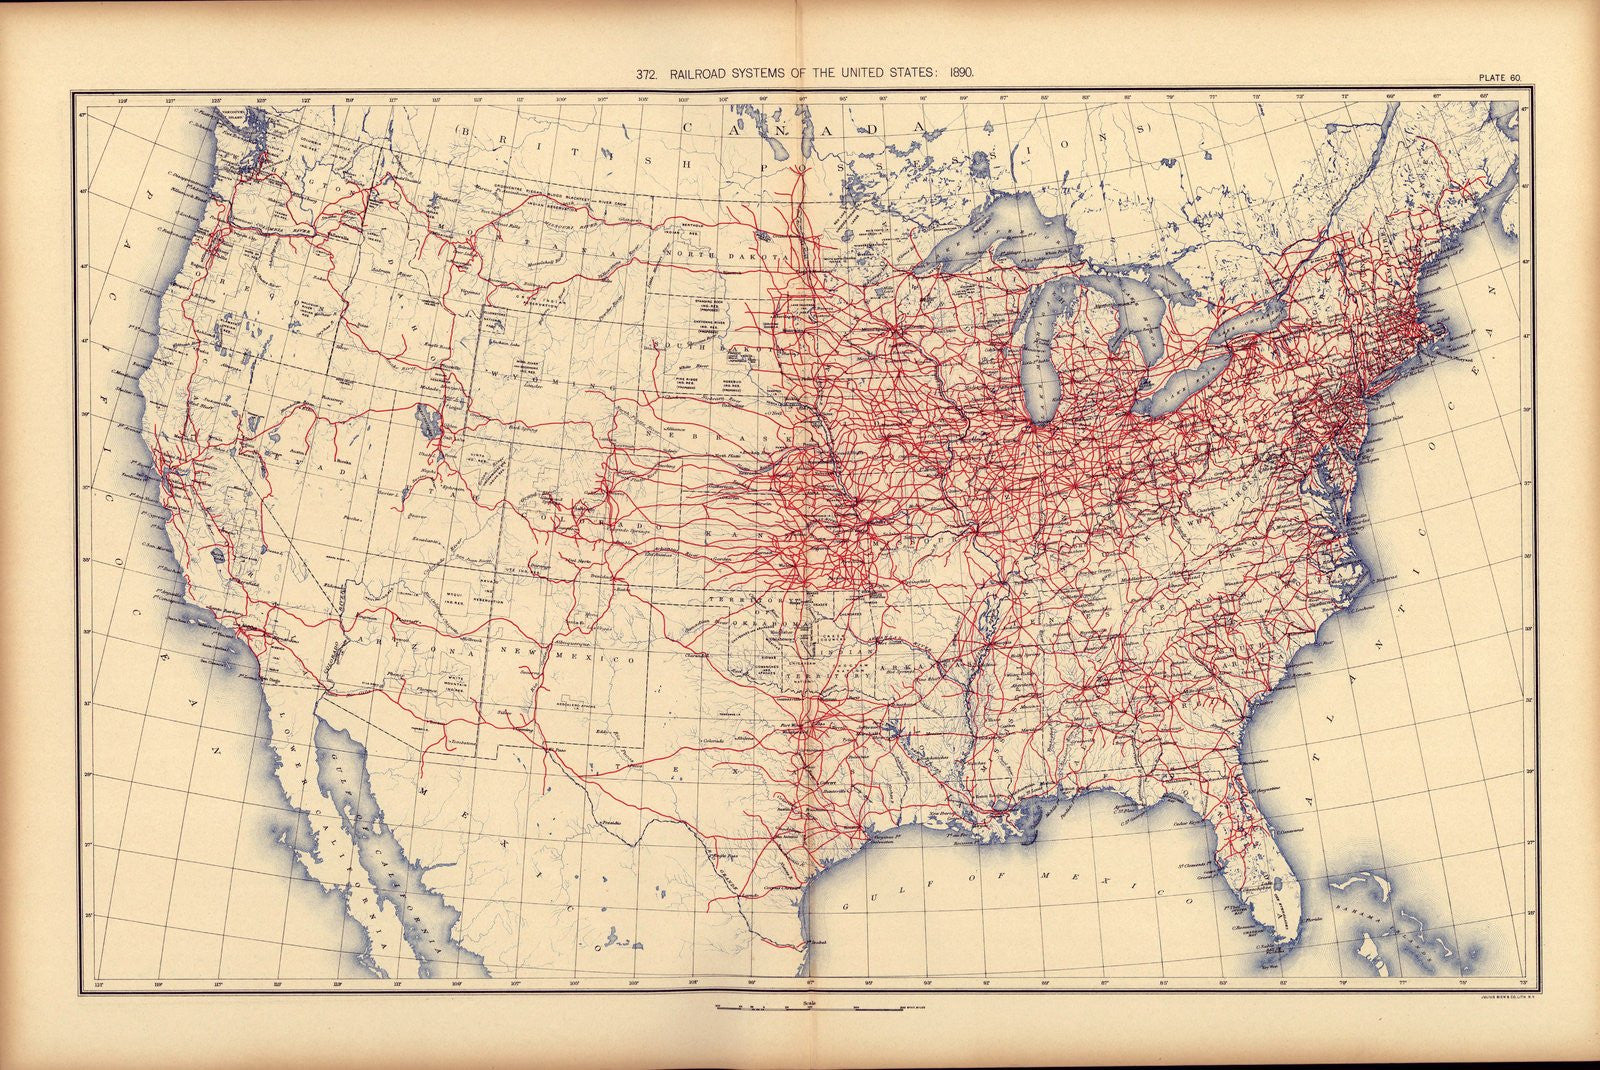 9aa956a0bea64 Railroad system of the United States: 1890 Print